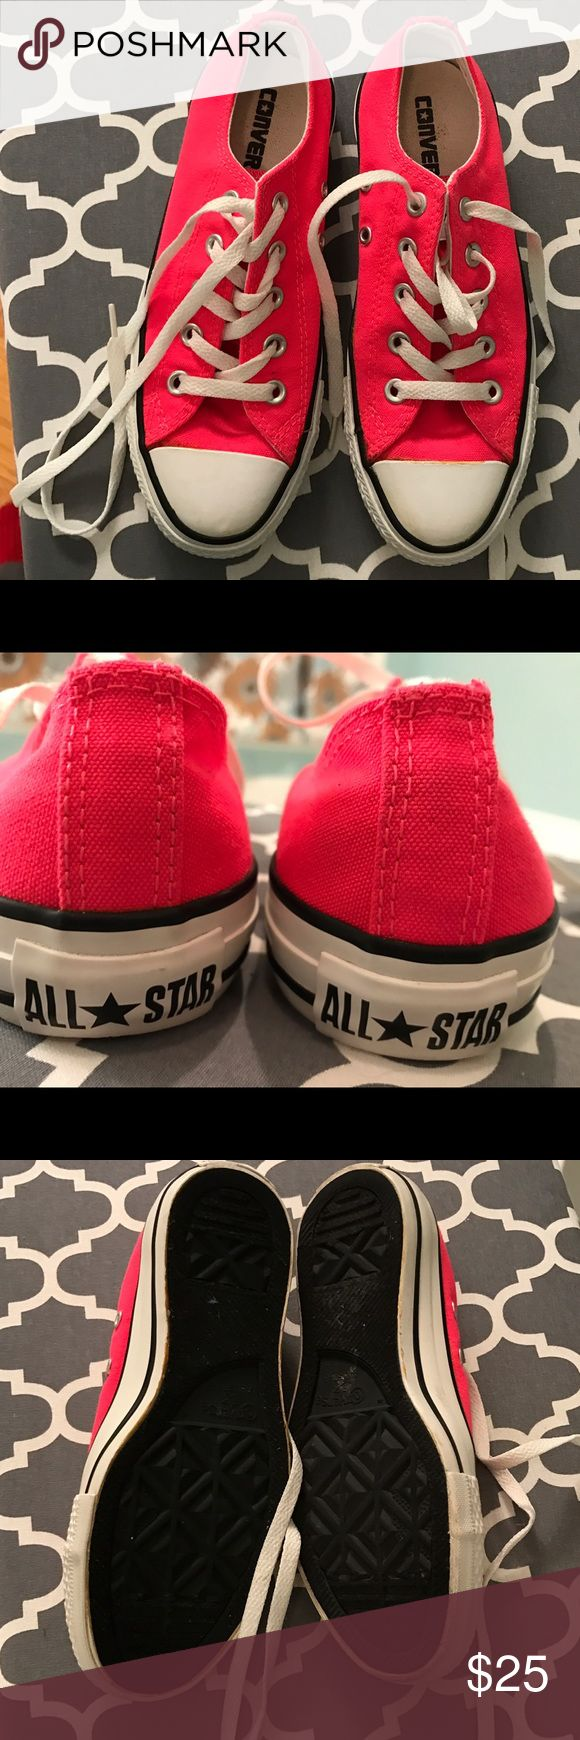 Converse Chuck Taylor's Neon Pink size 6 Converse Neon Pink Chuck Taylor's Women's size 6. EUC. They are the unisex size. Converse Shoes Sneakers